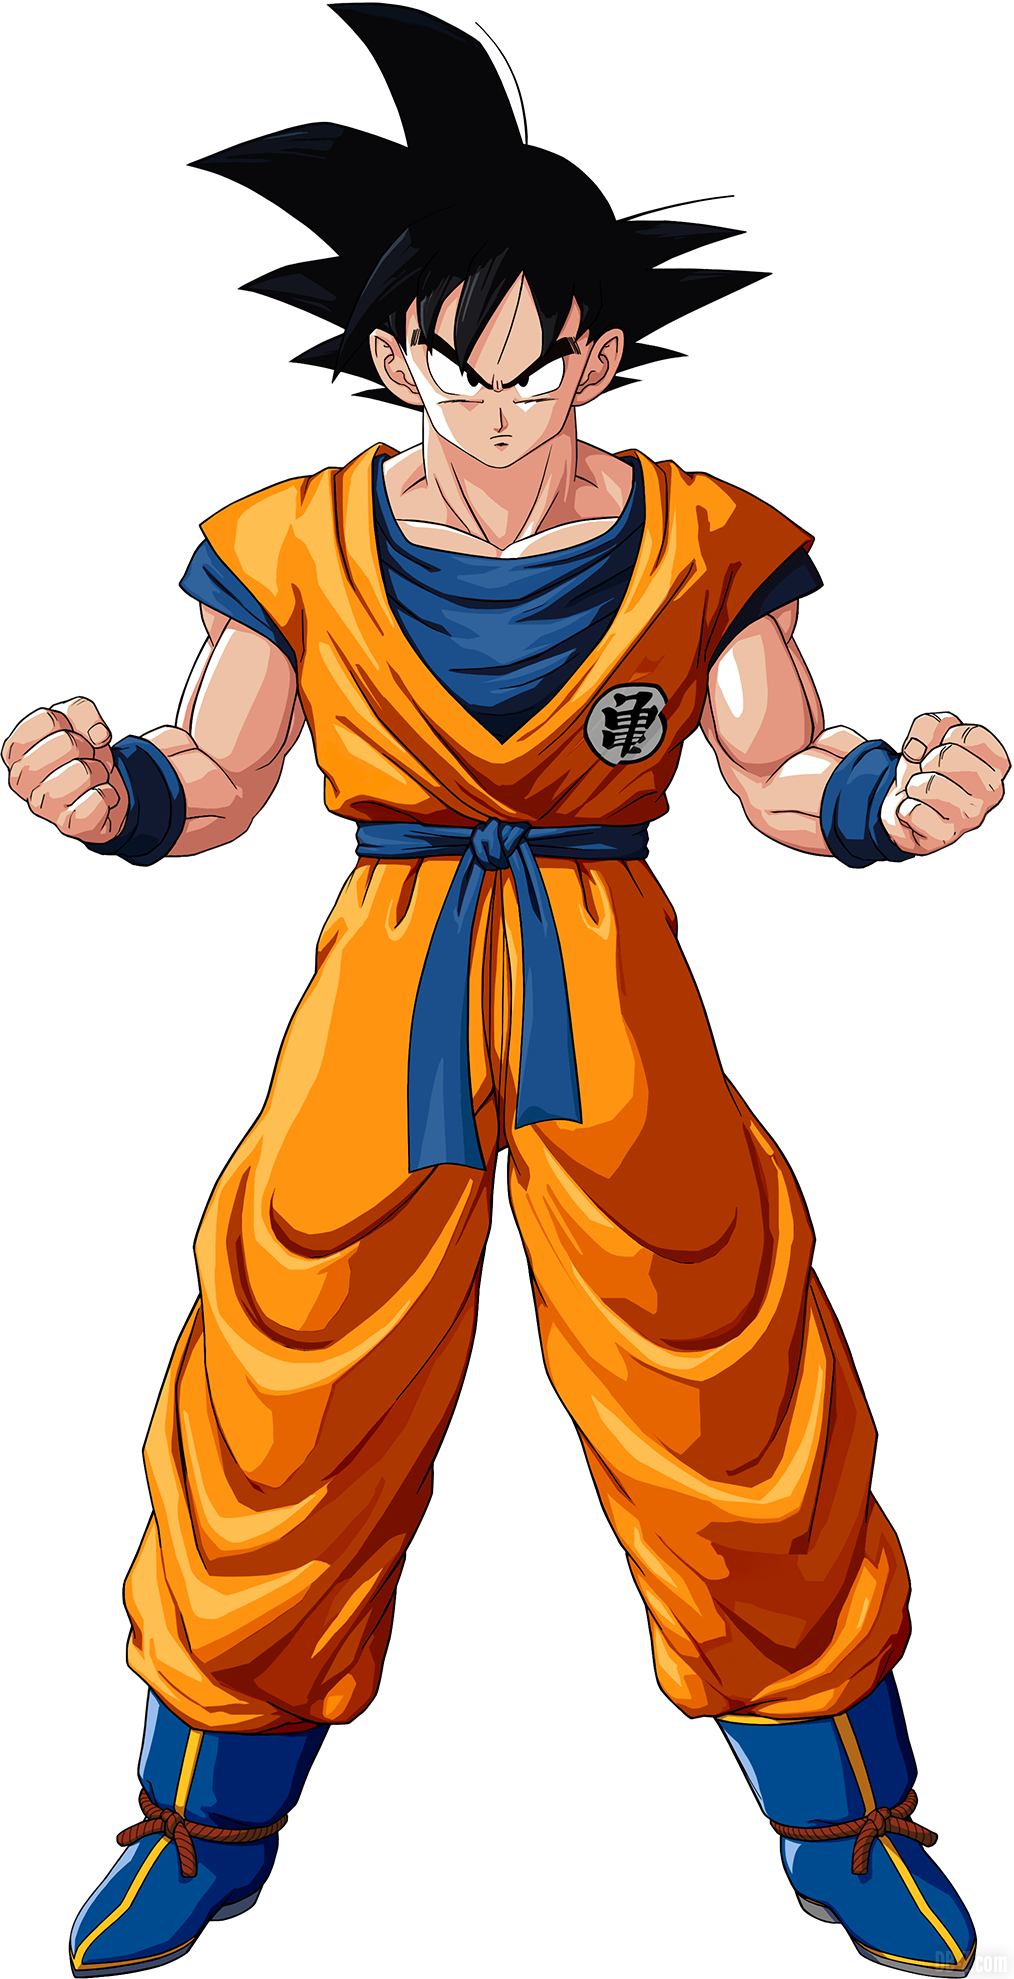 Son Goku (Dragon Ball Z Kakarot)